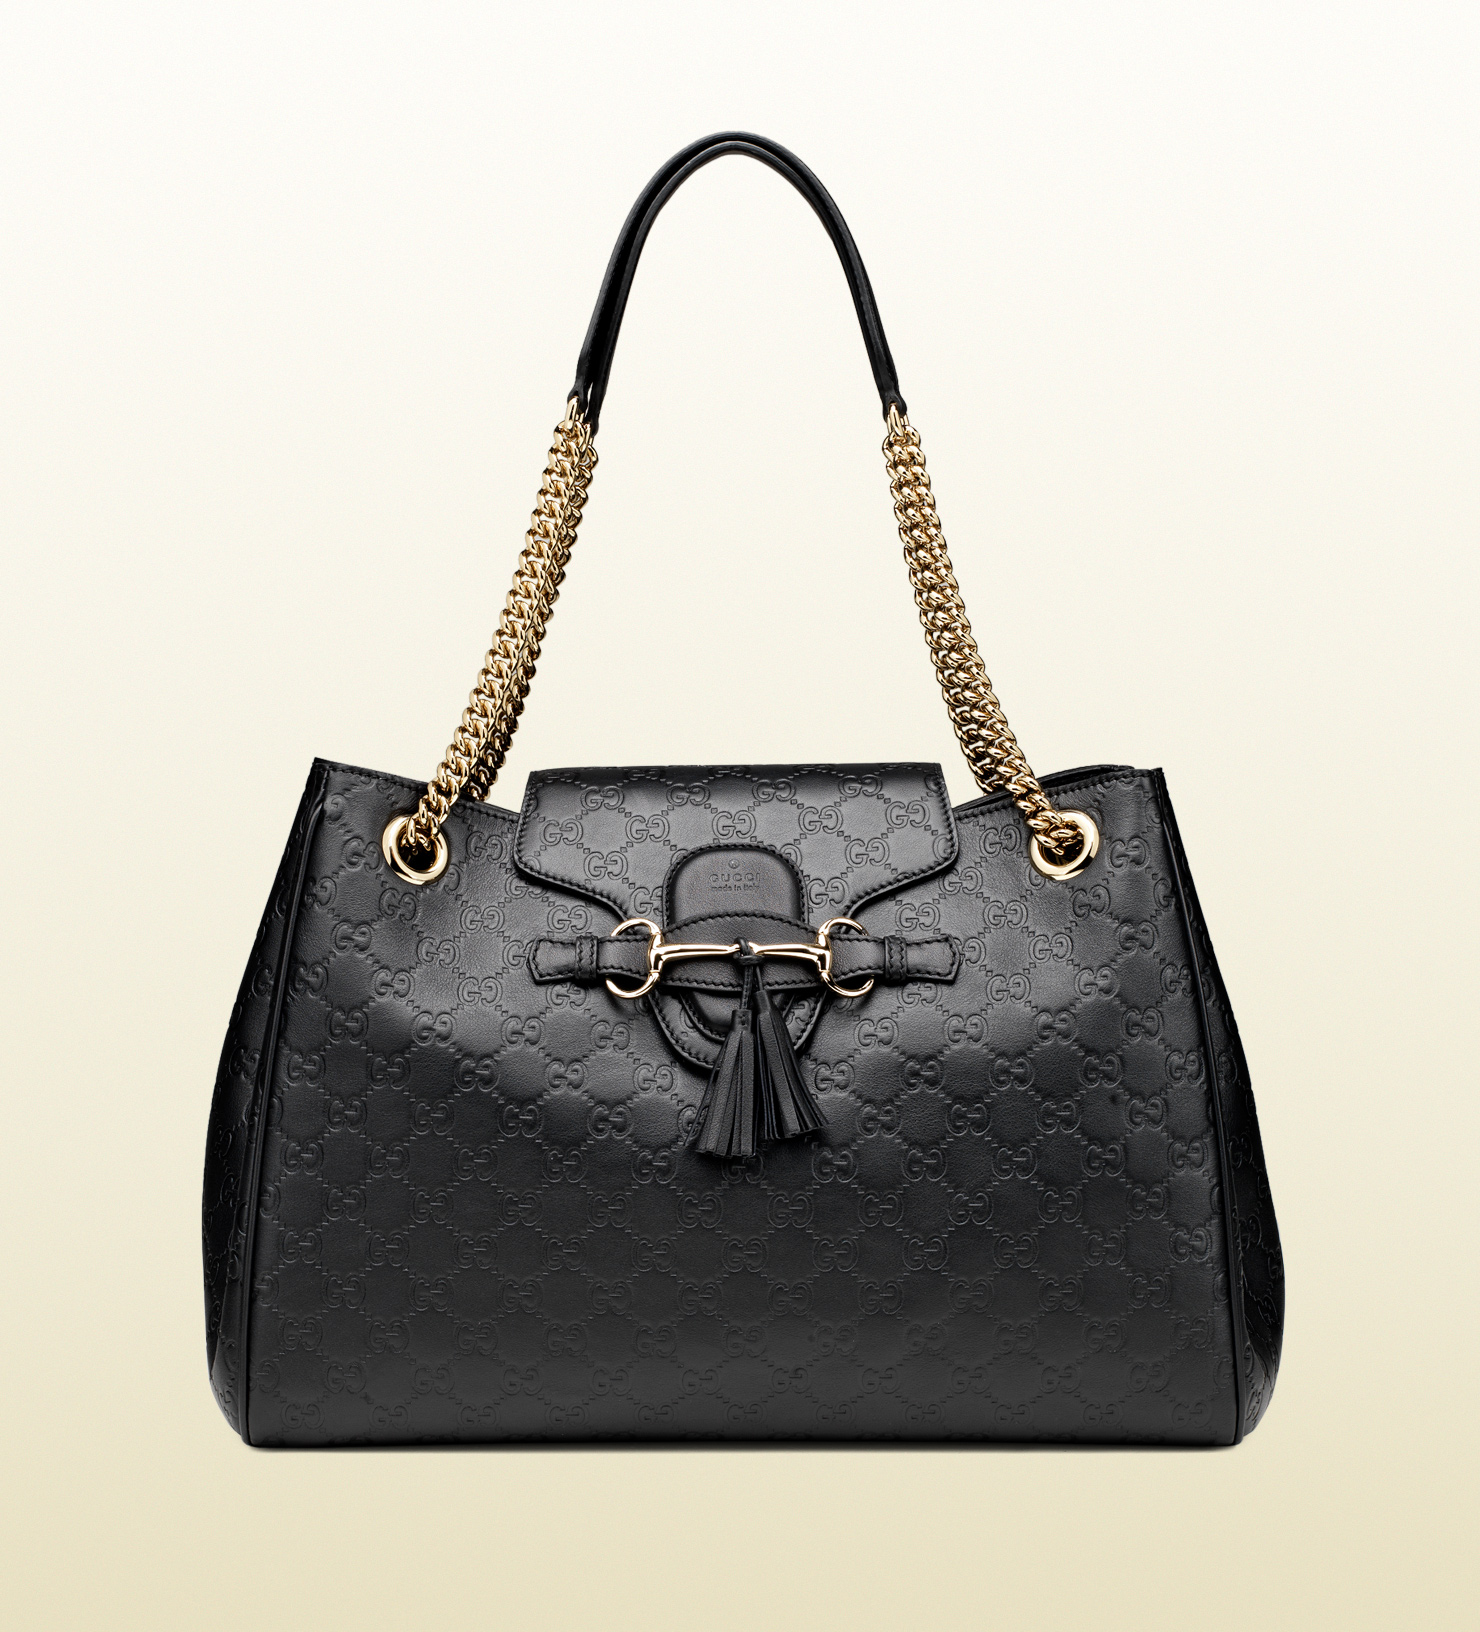 26e2d90ade6 Gucci Emily Chain Ssima Leather Shoulder Bag In Black Lyst - Modern ...